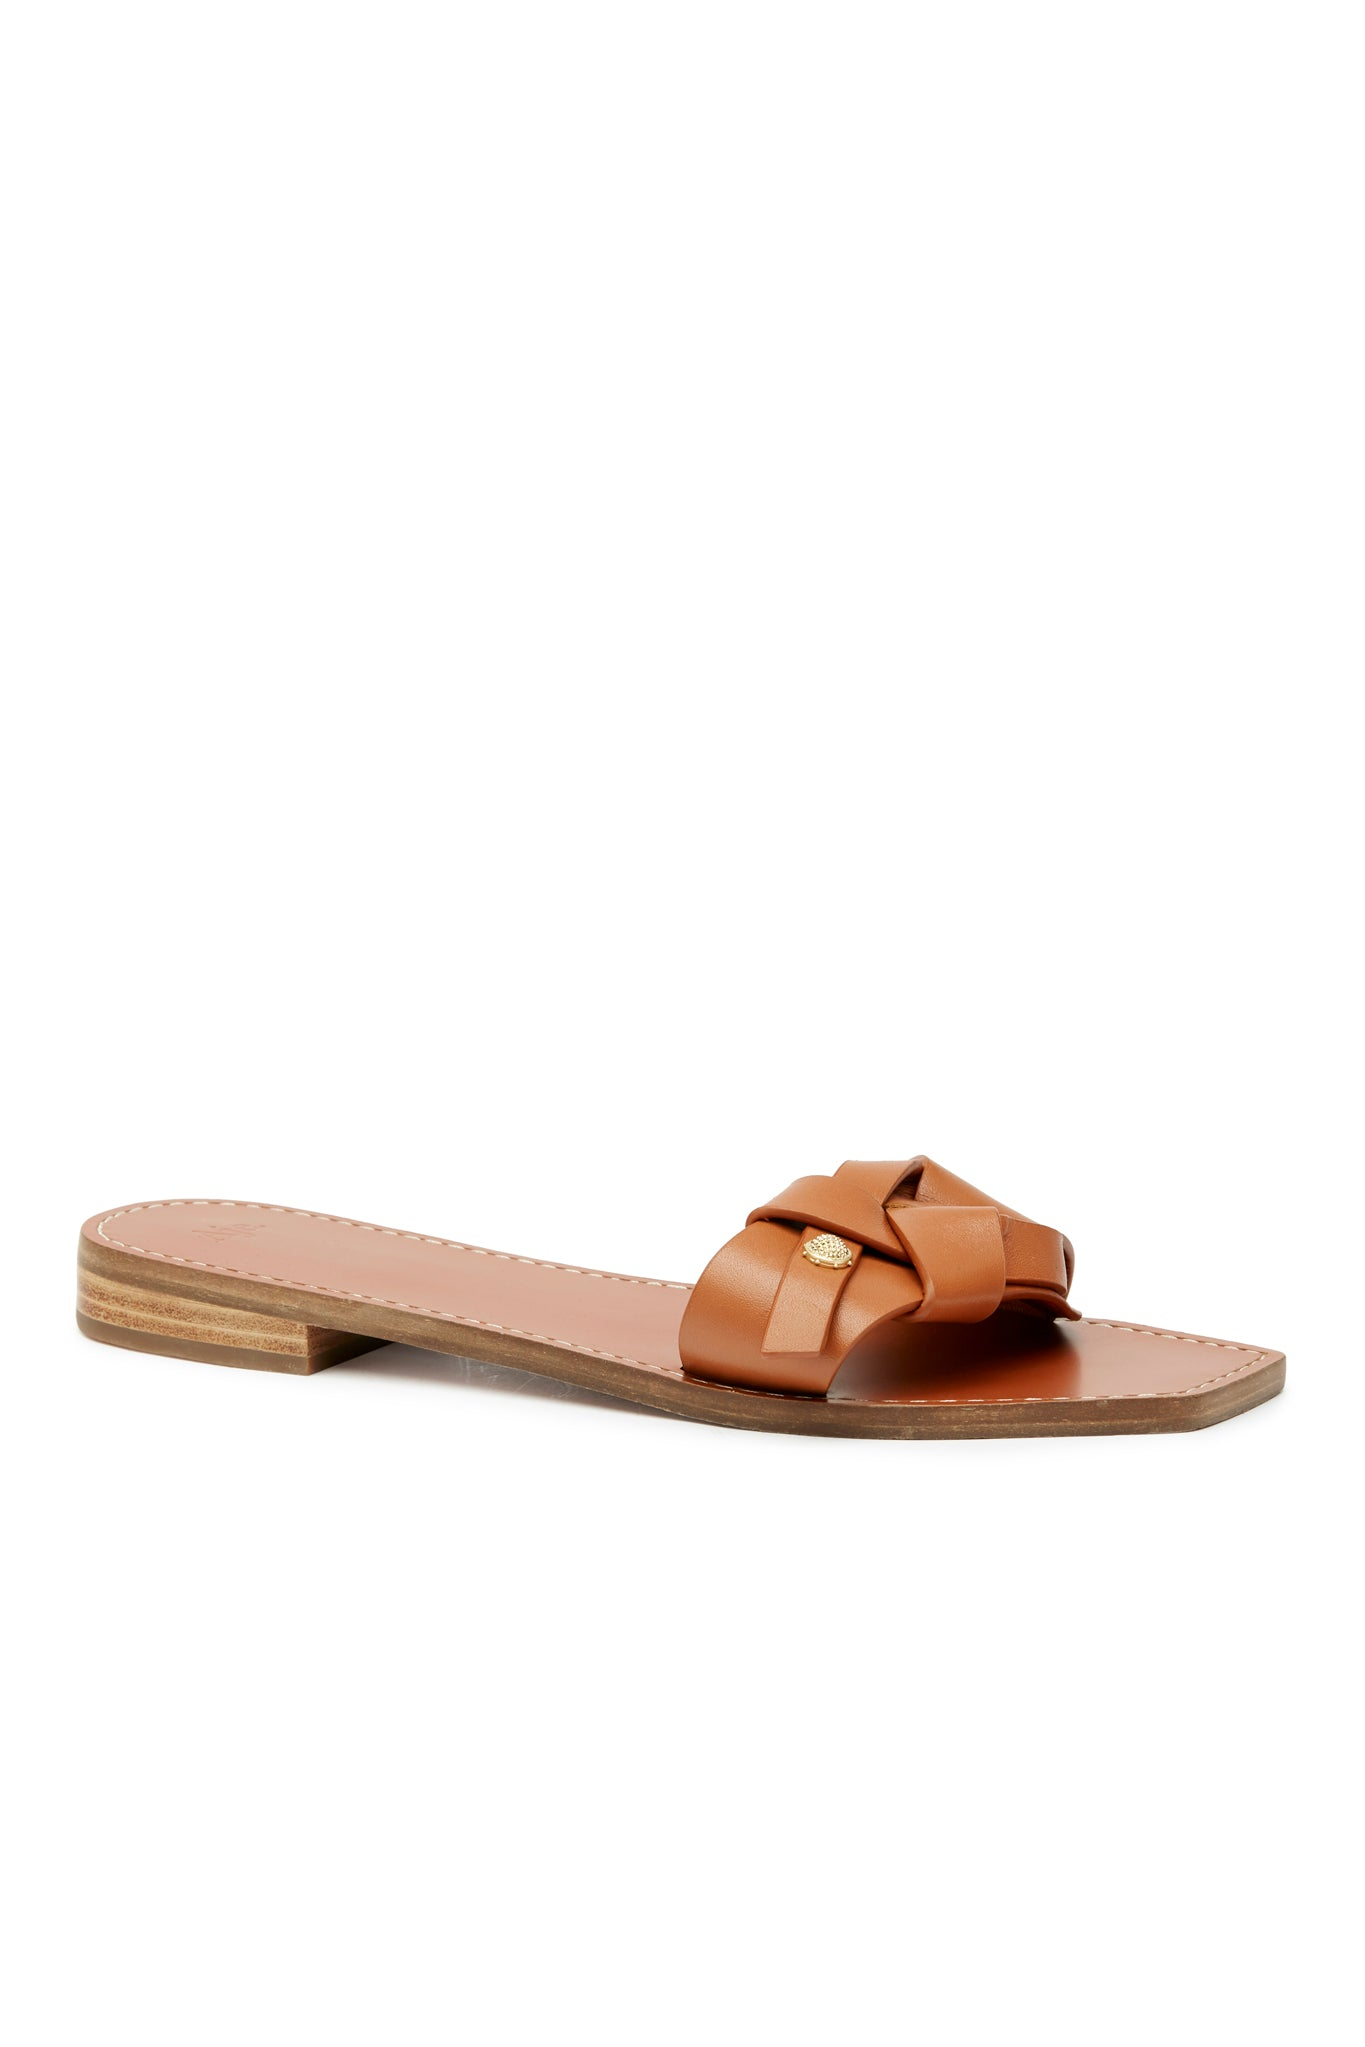 Balti Knot Sandal Product View